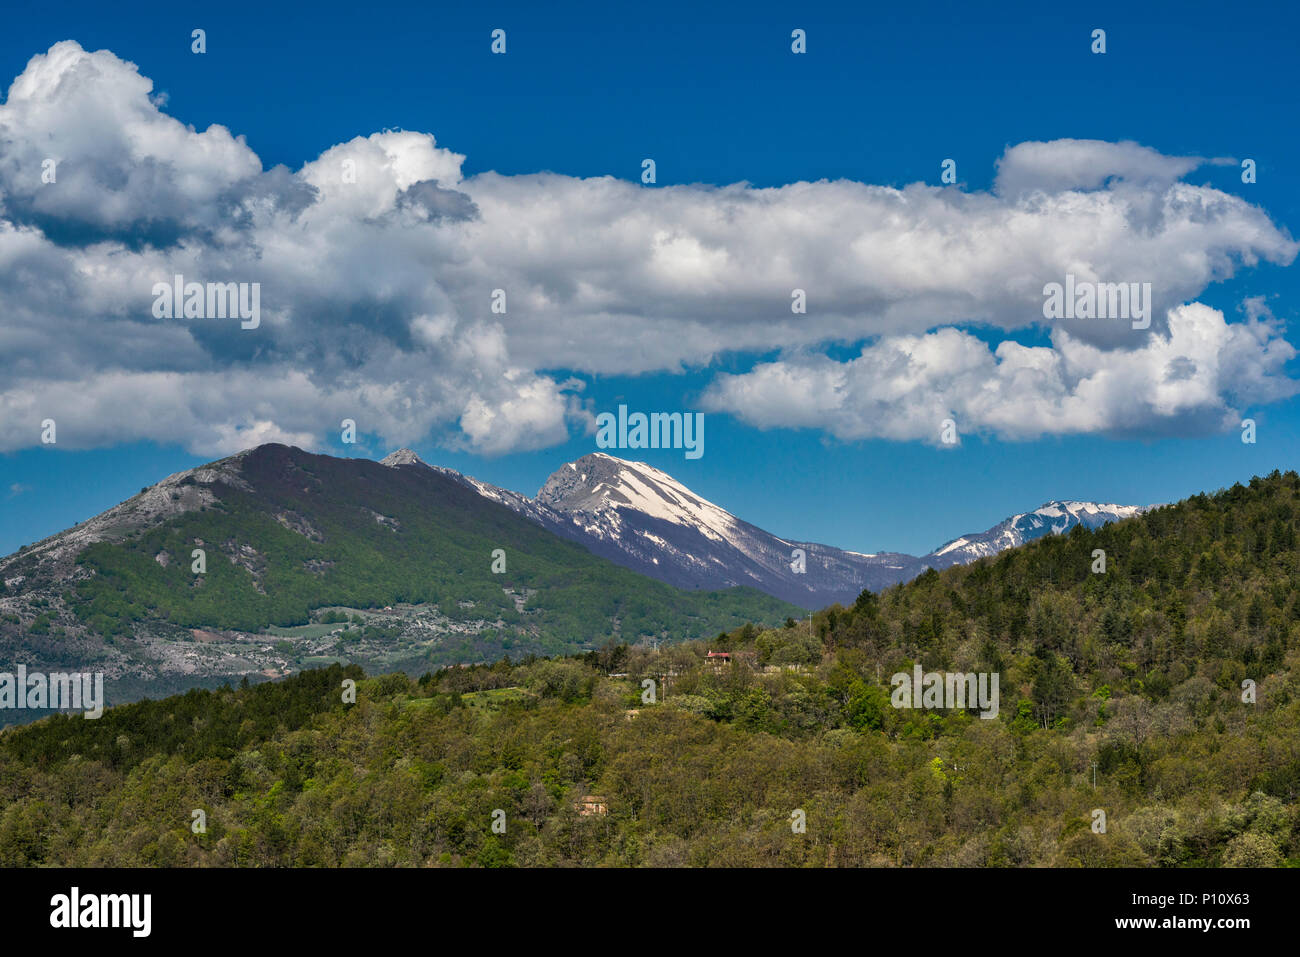 Pollino Massif, view from road 92 near San Lorenzo Bellizzi, Southern Apennines, Pollino National Park, Calabria, Italy - Stock Image